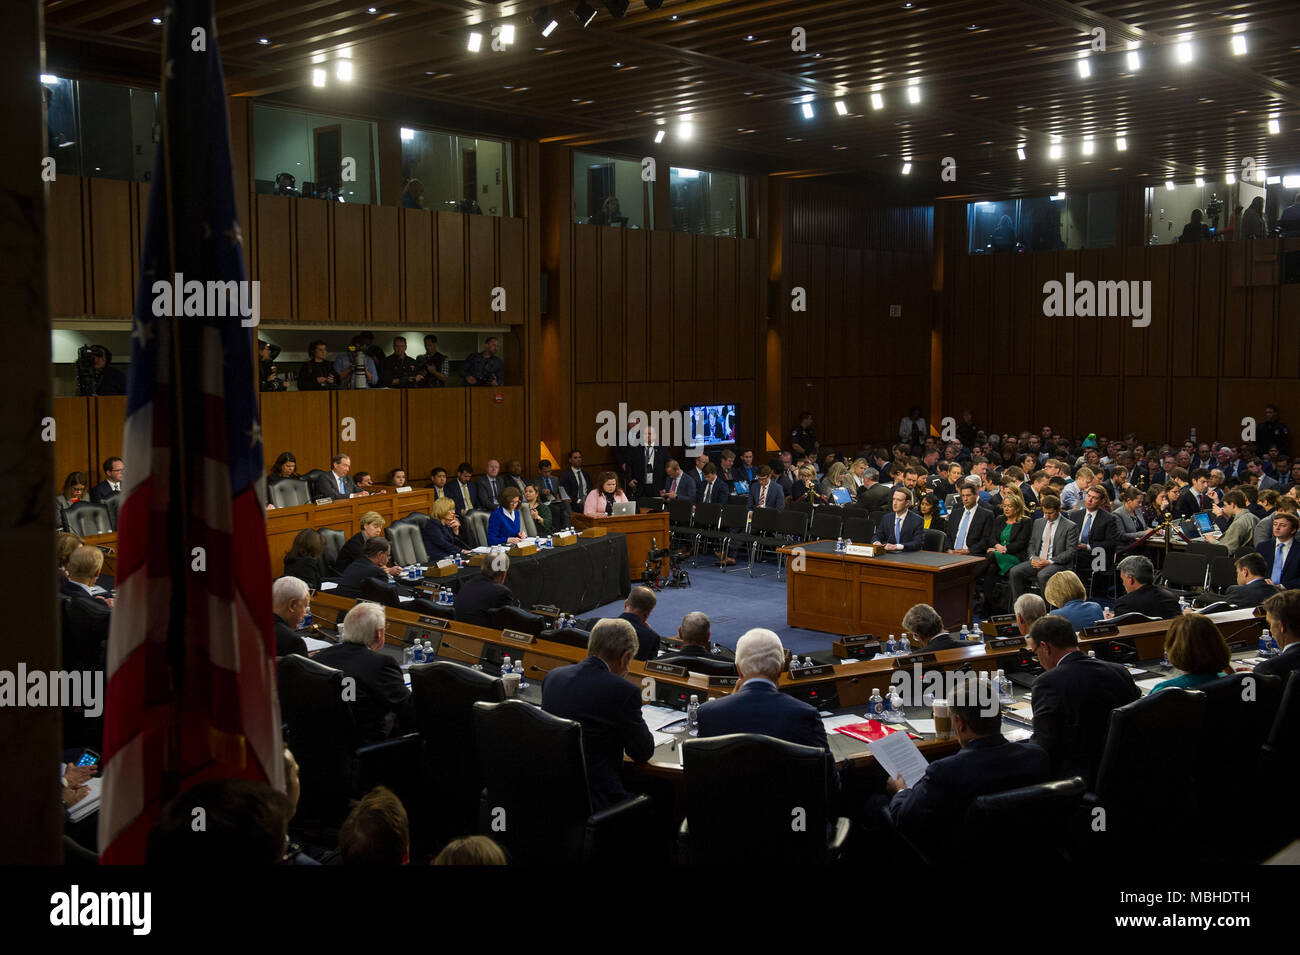 C Washington DC USA 10th April 2018 Facebook CEO Mark Zuckerberg  Testifies Before A Joint Hearing With The Senate Judiciary Committee On Commerce